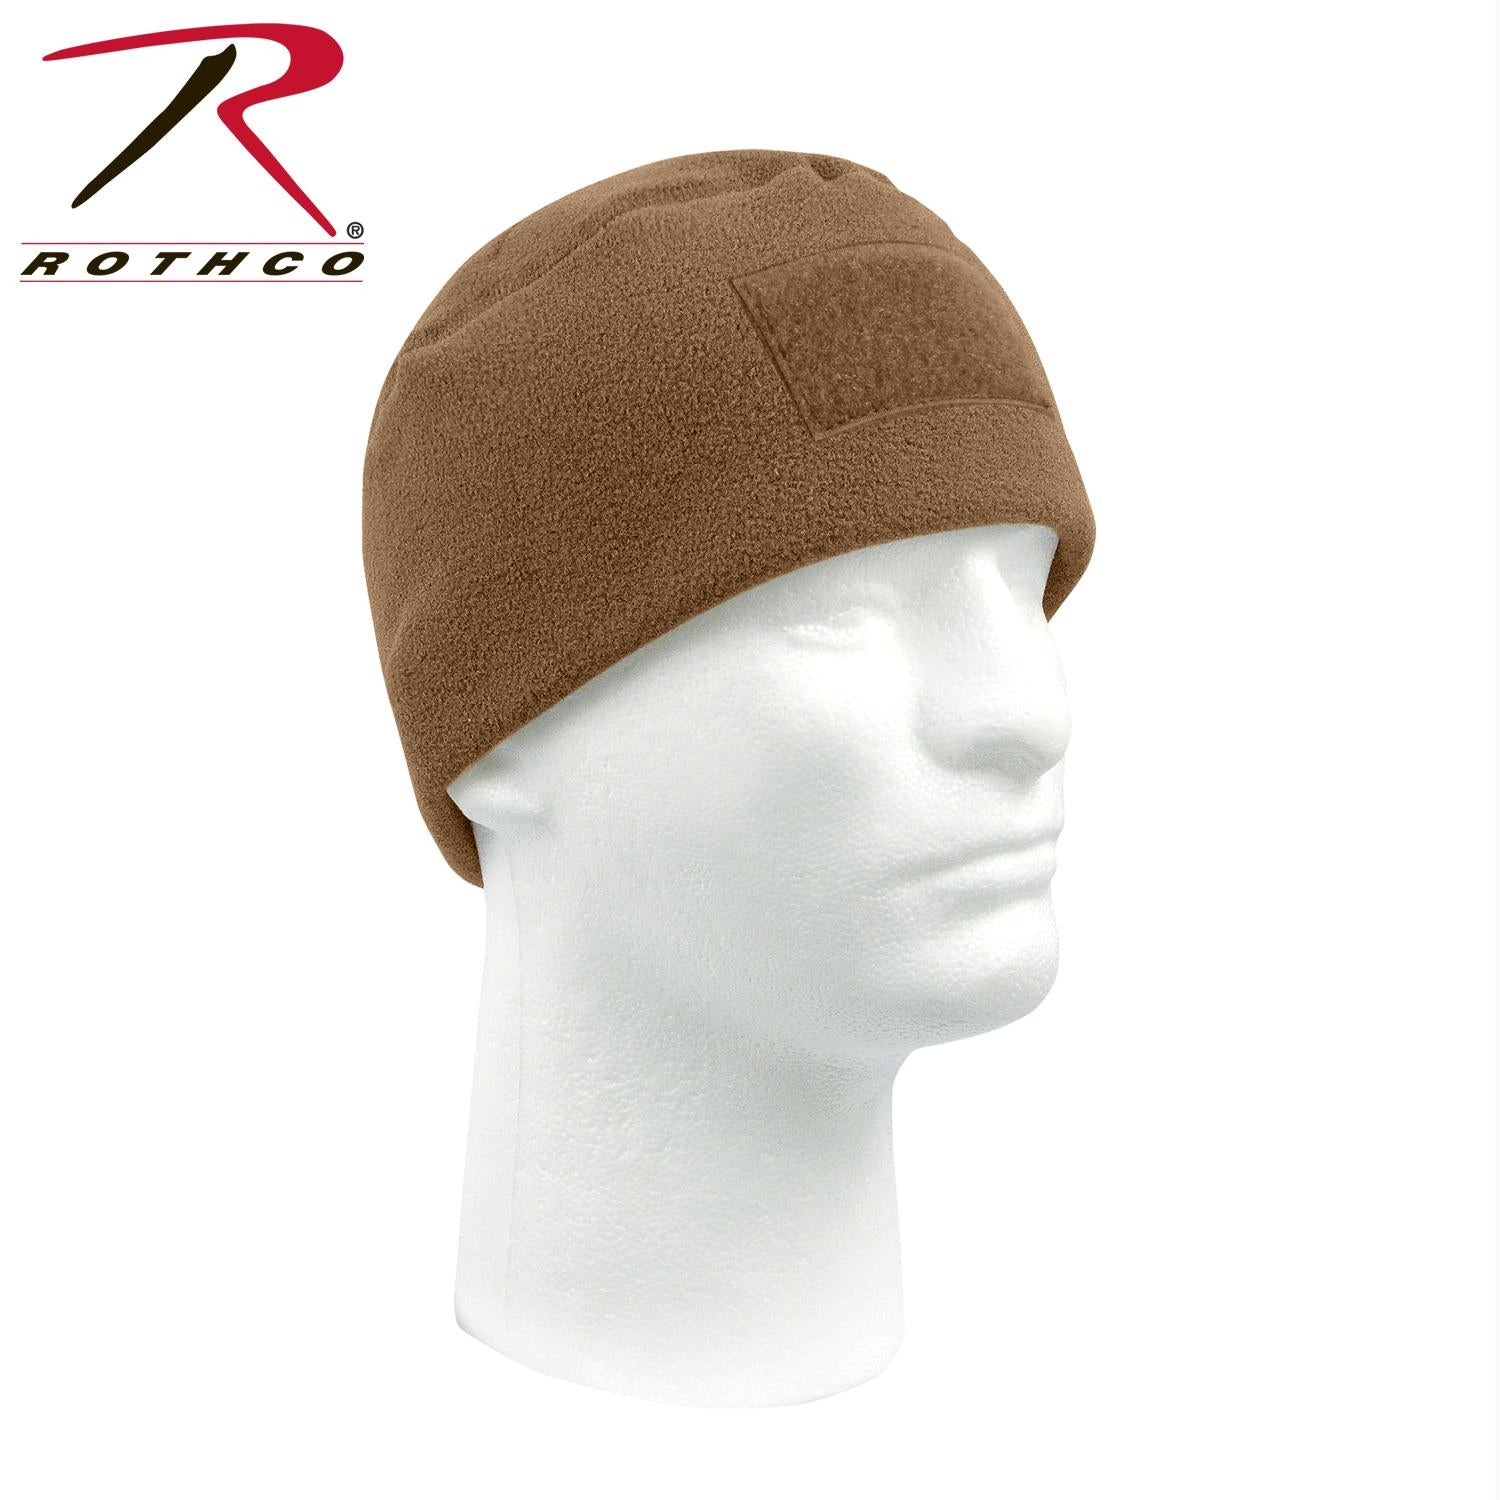 Rothco Tactical Watch Cap - Coyote Brown